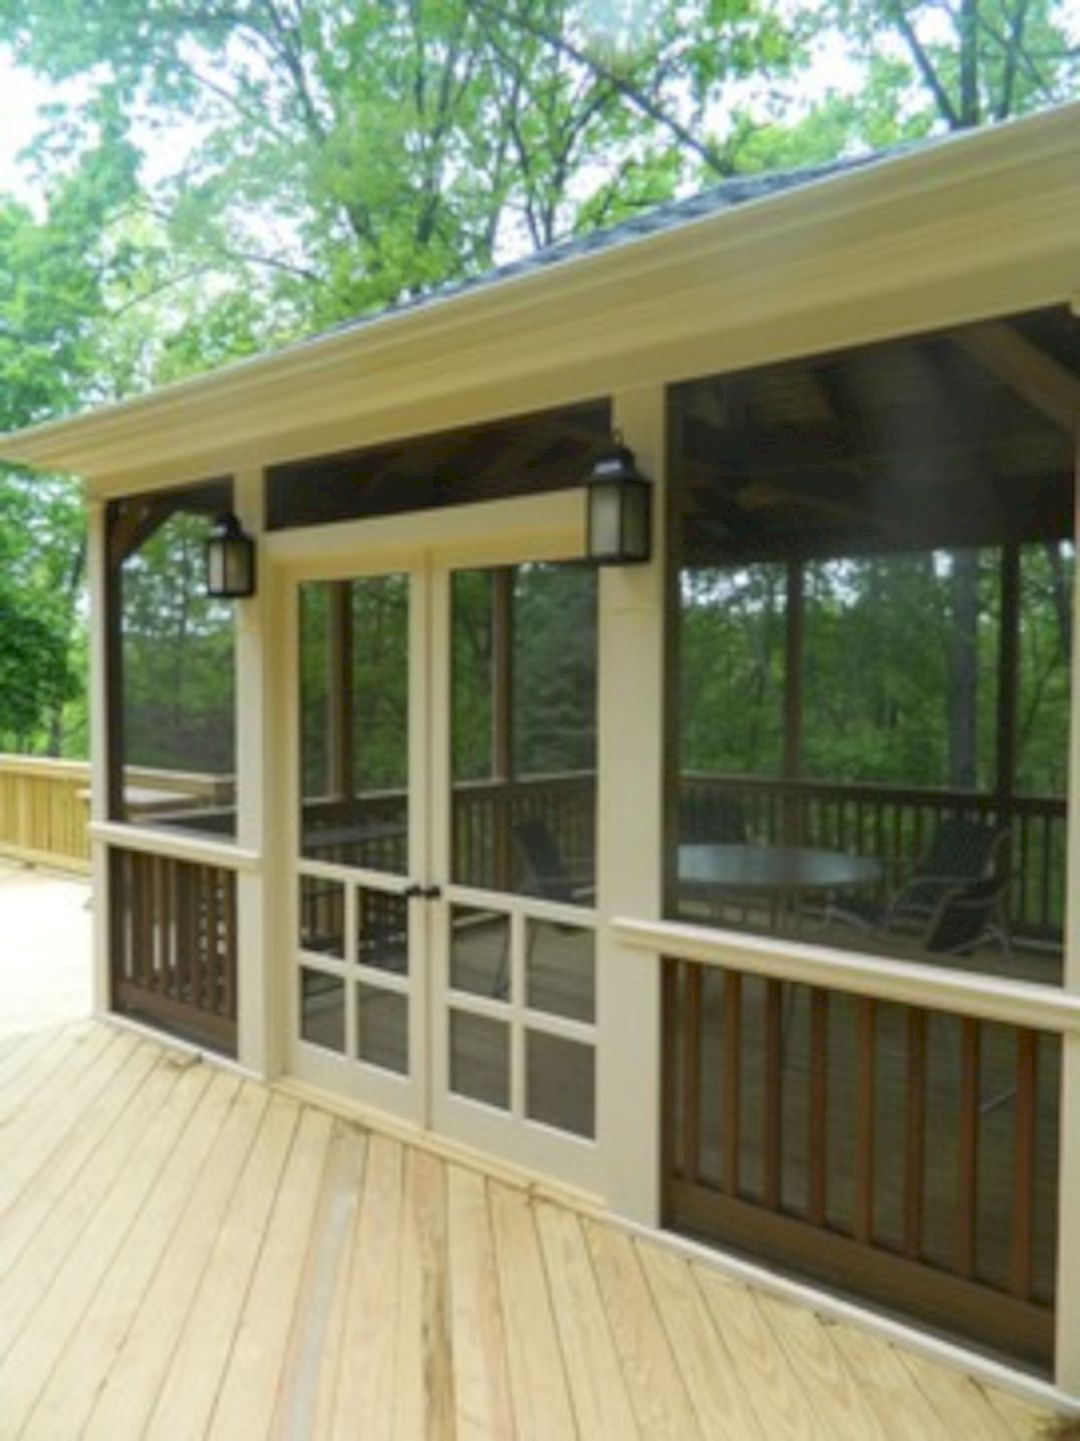 8 ways to have more appealing screened porch deck | deck | pinterest